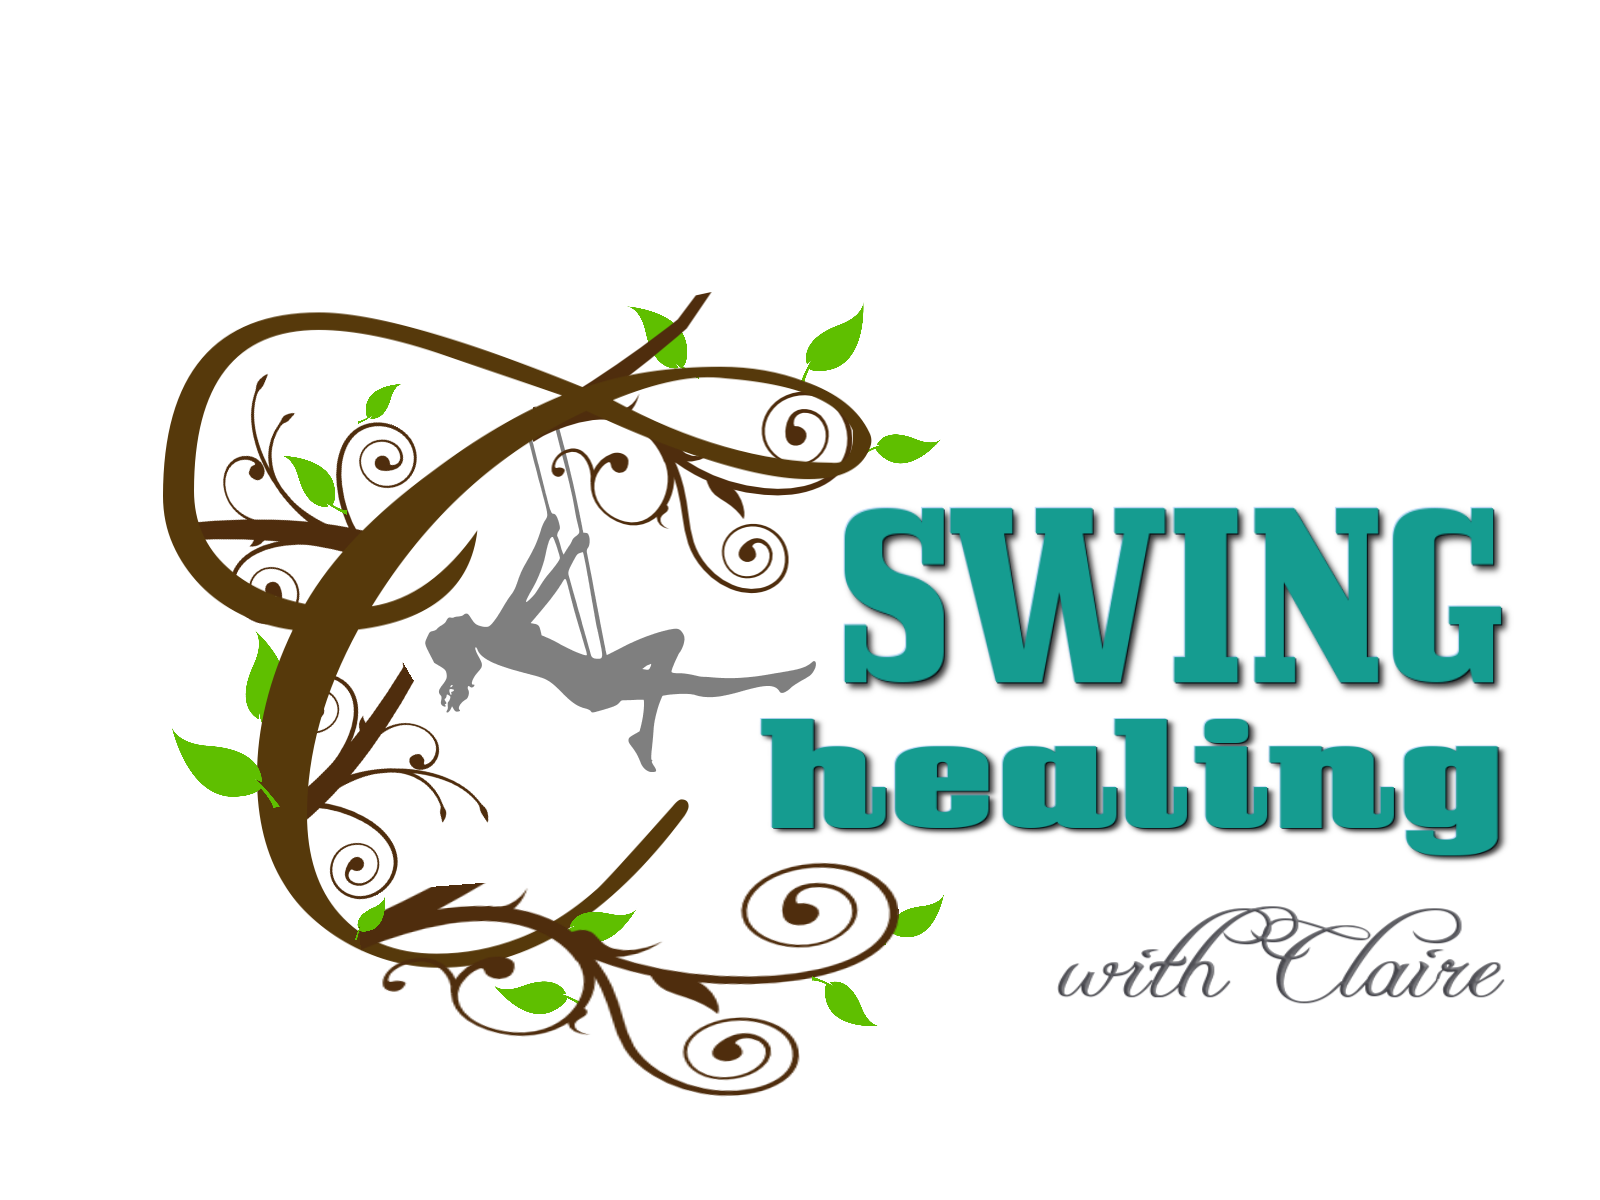 SWING Healing: My new healing site/blog!